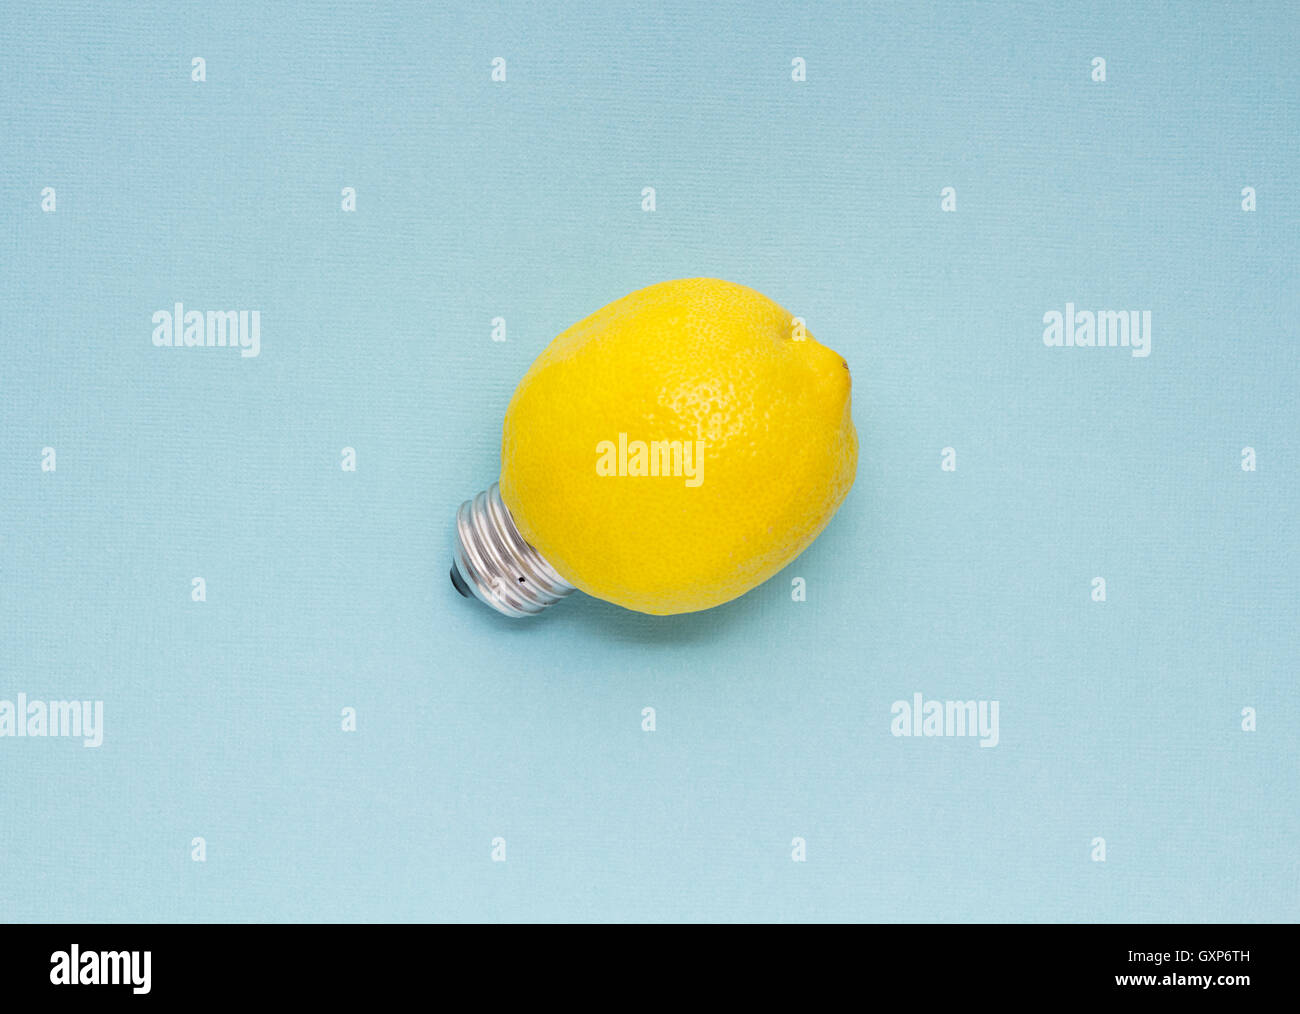 Creative concept photo of a lemon with a bulb on blue background. - Stock Image